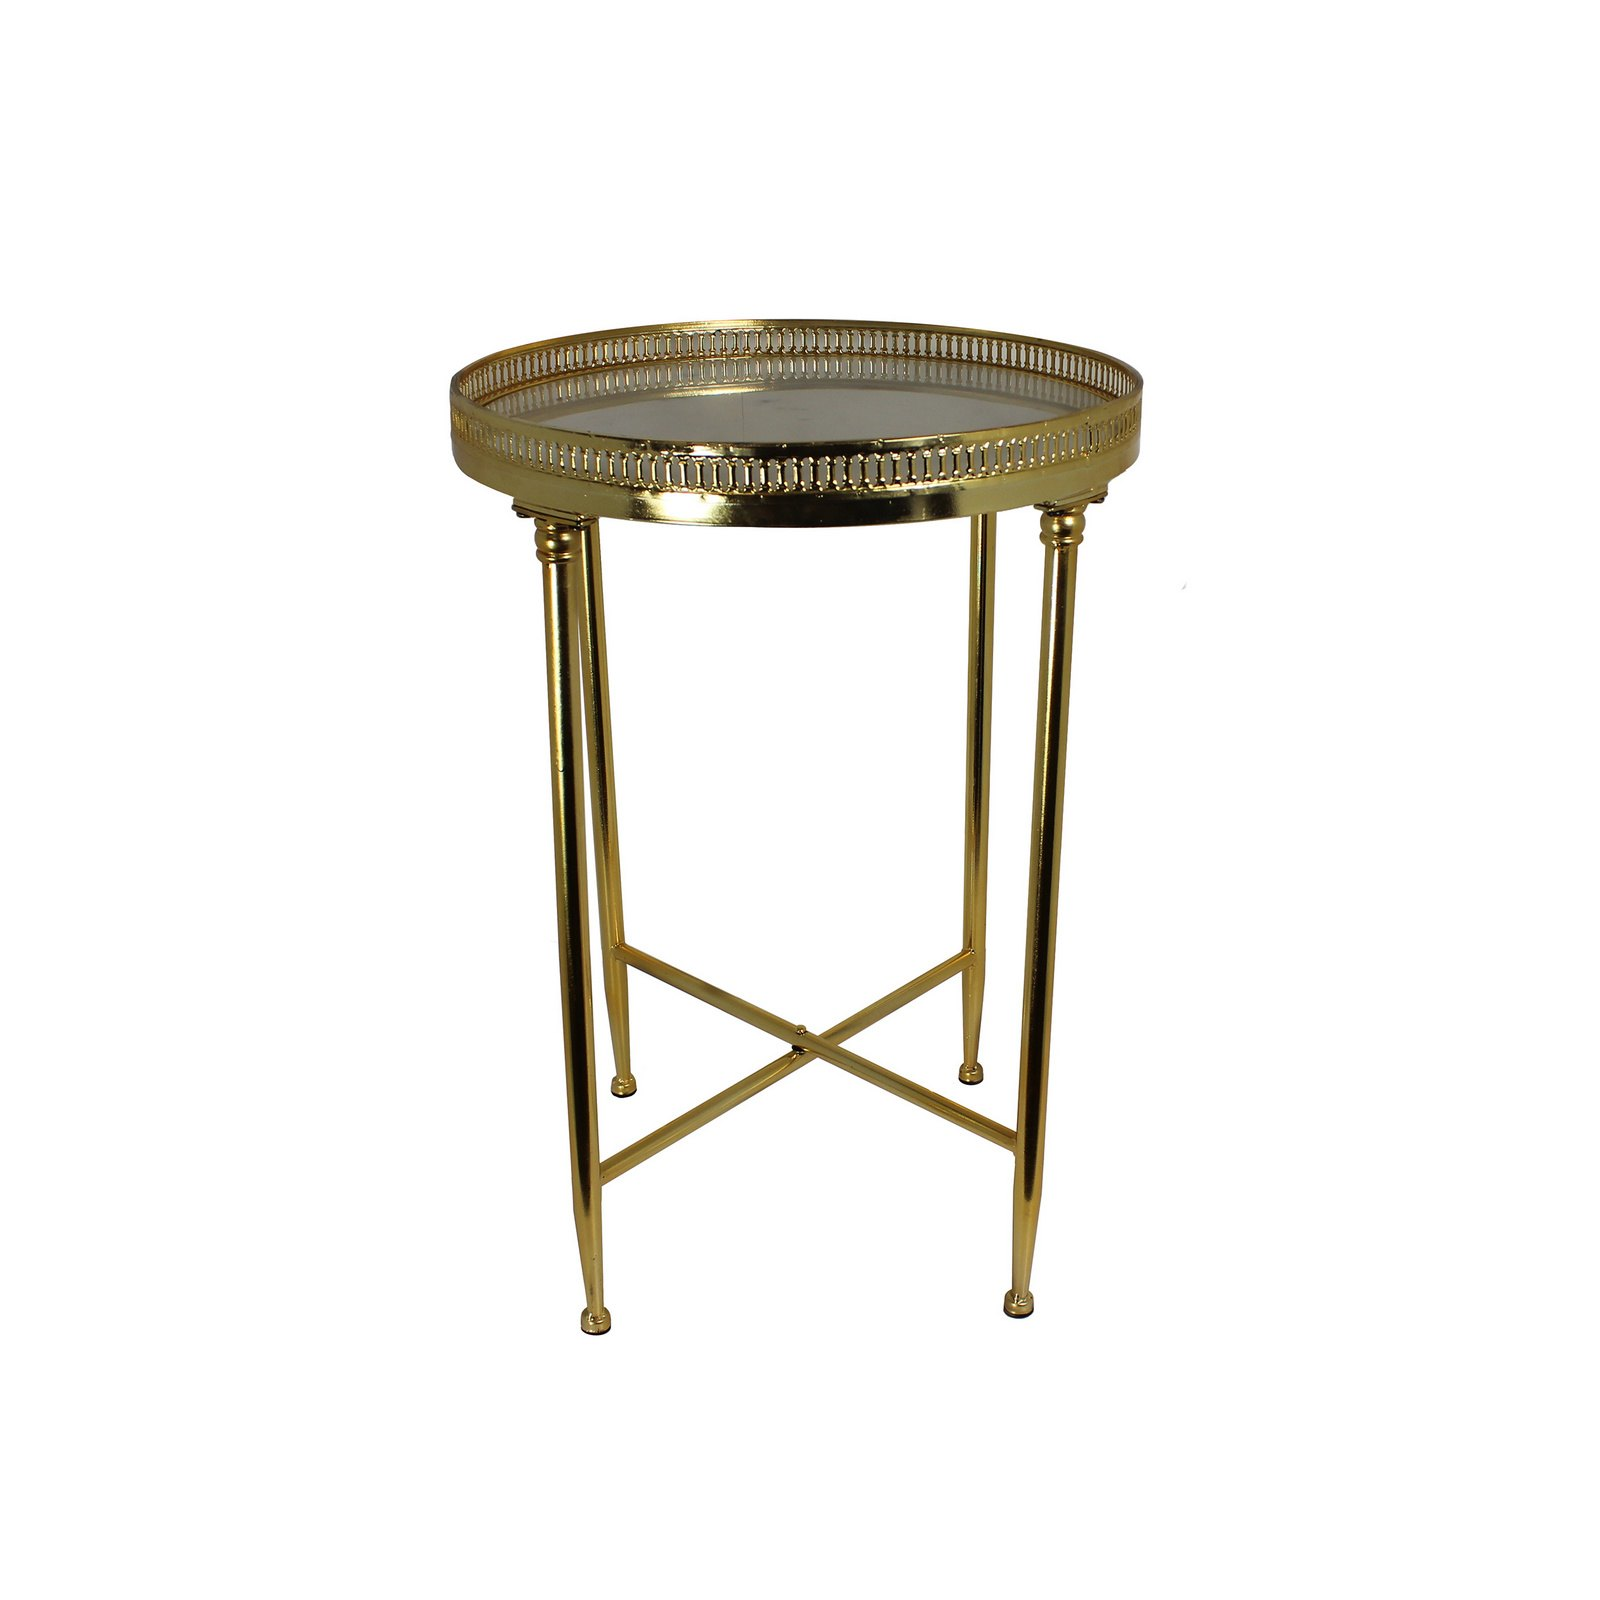 mom urban designs faith inch marble top round accent table long cabinet small black nightstand wicker garden furniture espresso colored end tables nesting console wire side large